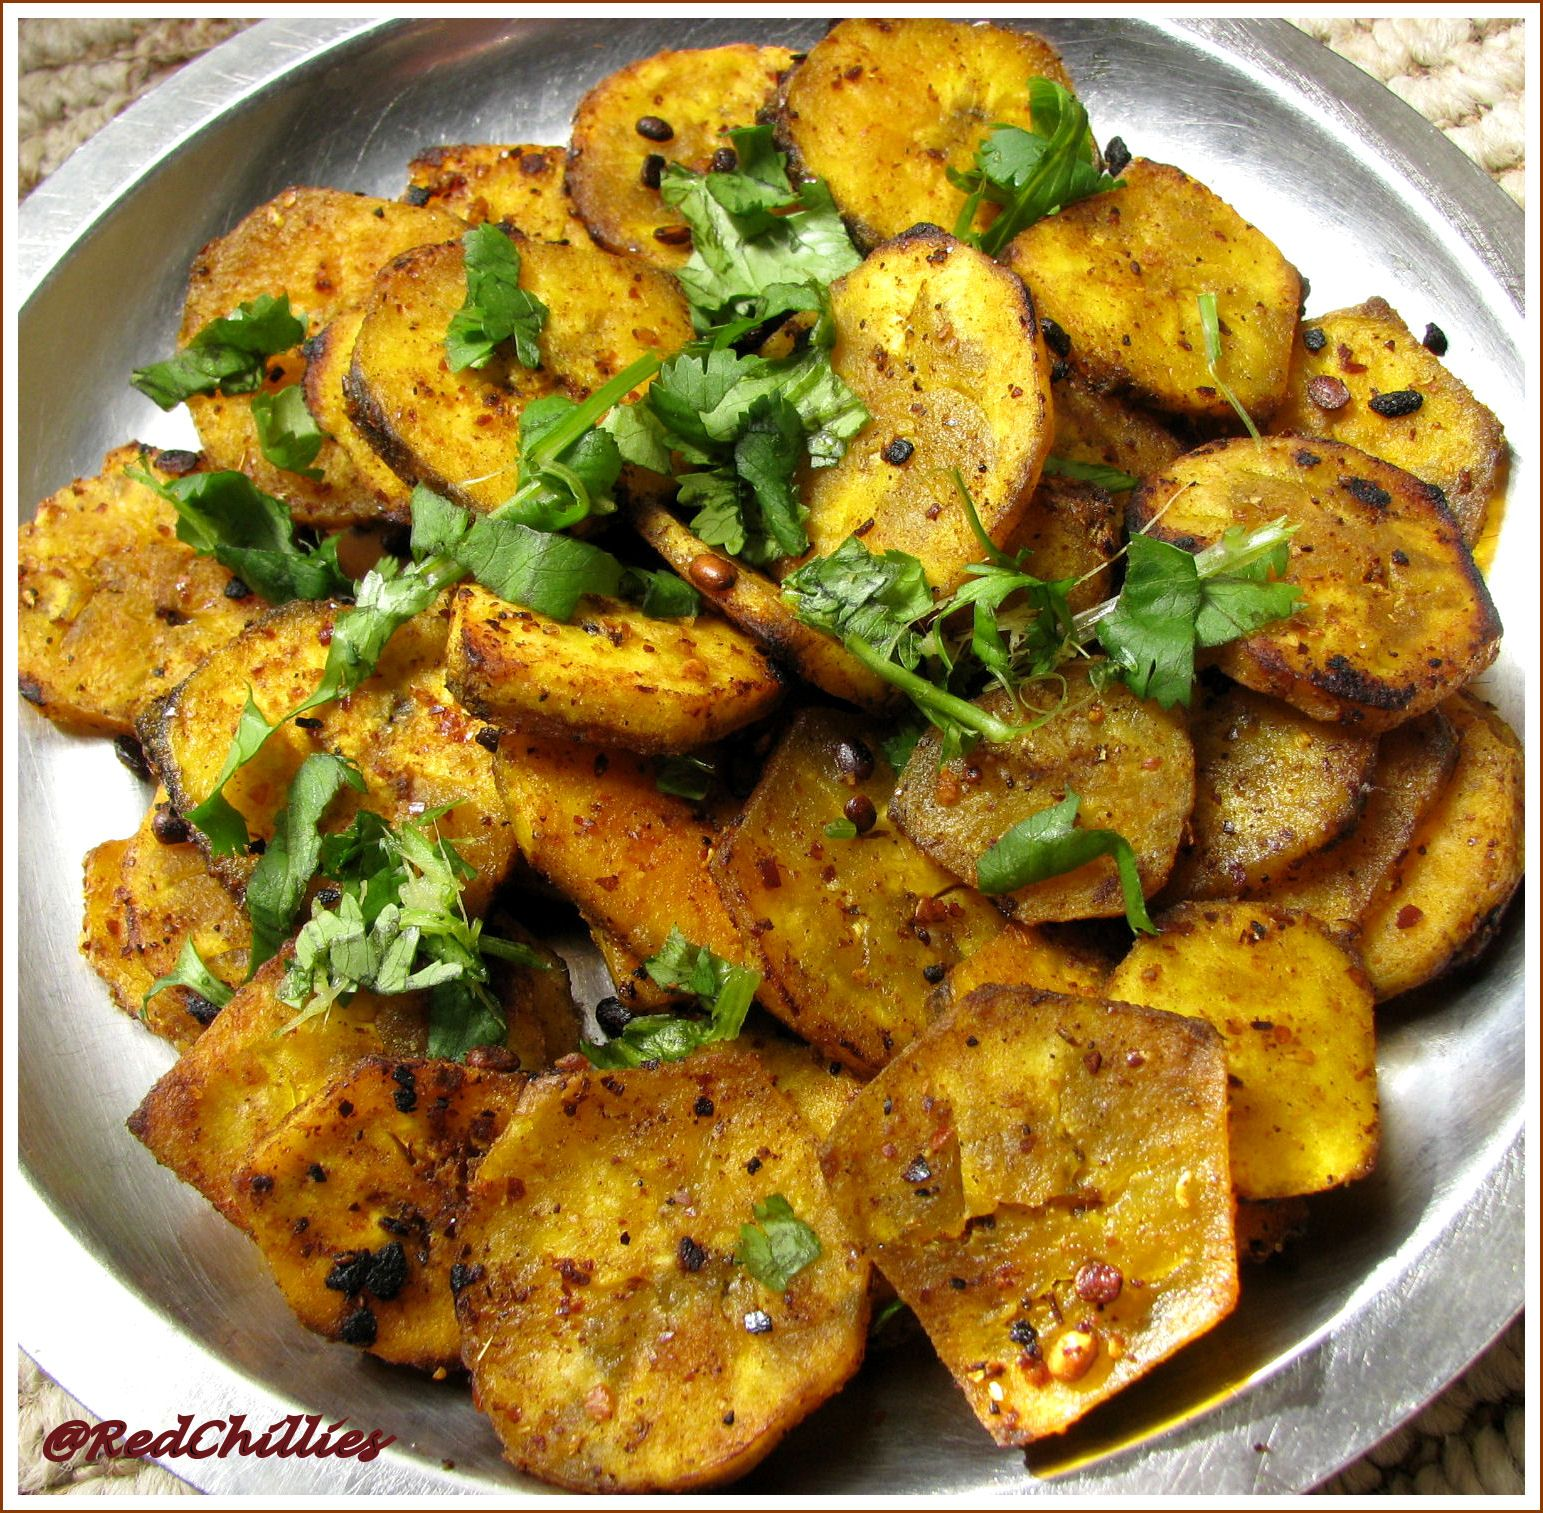 Vegetarian indian food recipe spiced raw banana fry plaintain vegetarian indian food recipe spiced raw banana fry plaintain curry redchillies forumfinder Image collections